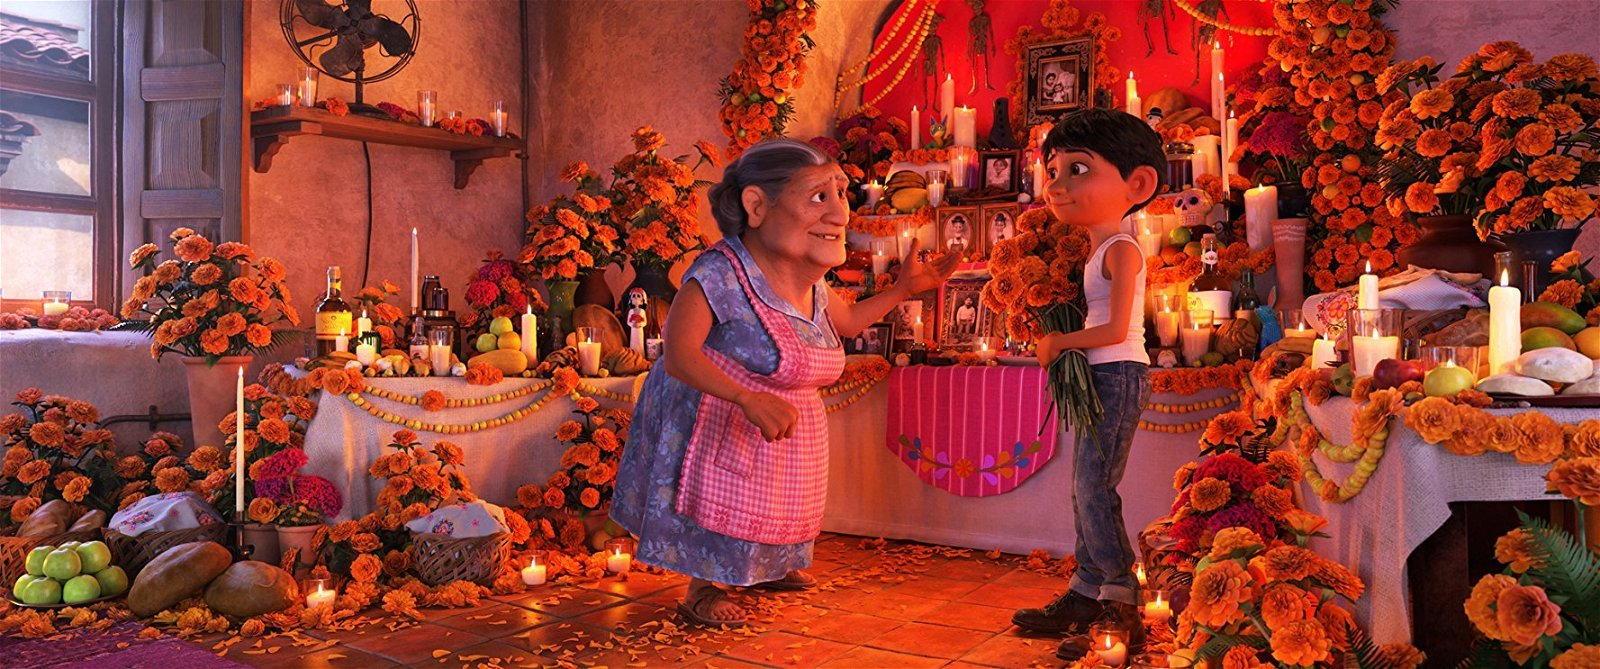 Image Result For Review Film Coco